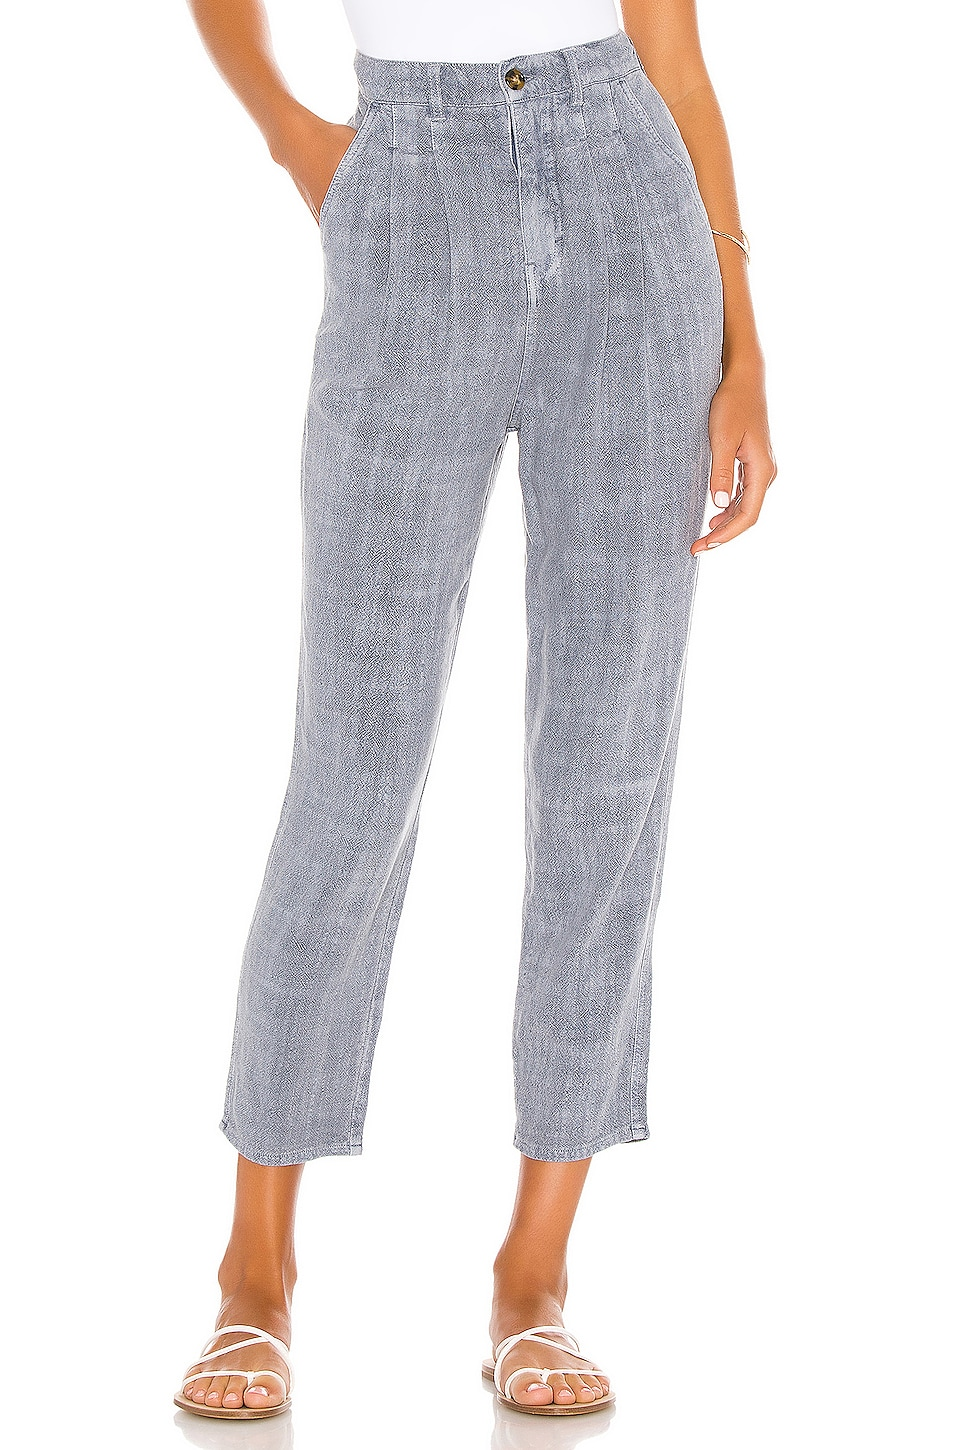 Faded Love Pant                     Free People 7